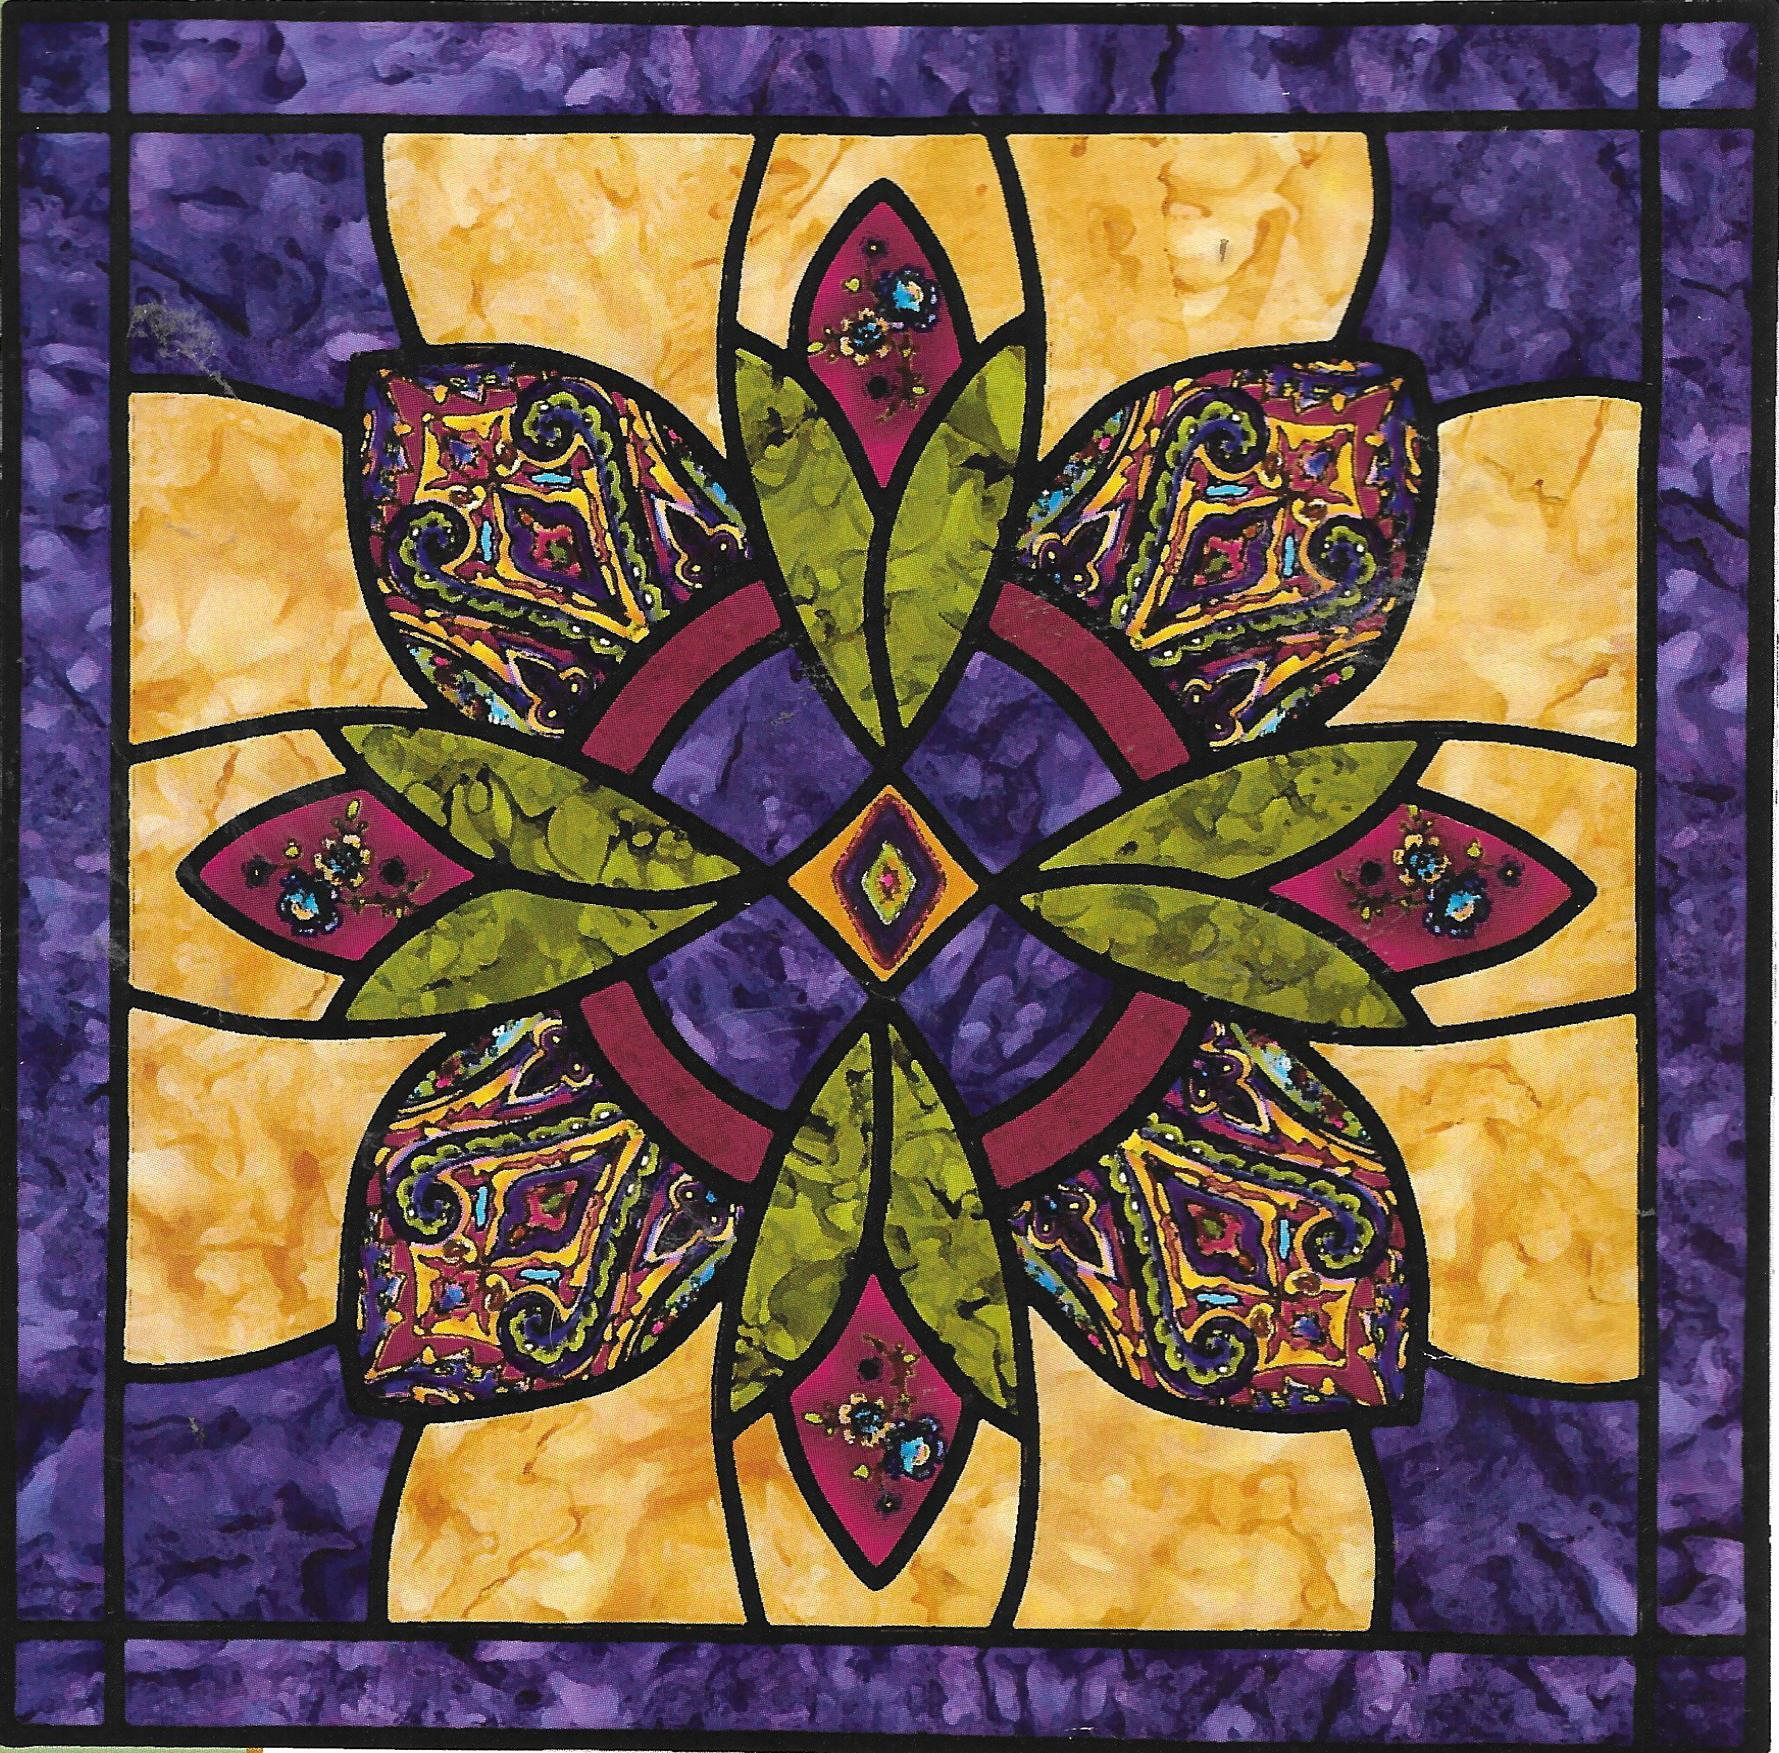 Sewing with nancy regal medallion wall hanging 22 inch quilt sewing with nancy regal medallion wall hanging 22 inch quilt square cathedral window purple and gold stained glass pattern rare oop jeuxipadfo Image collections